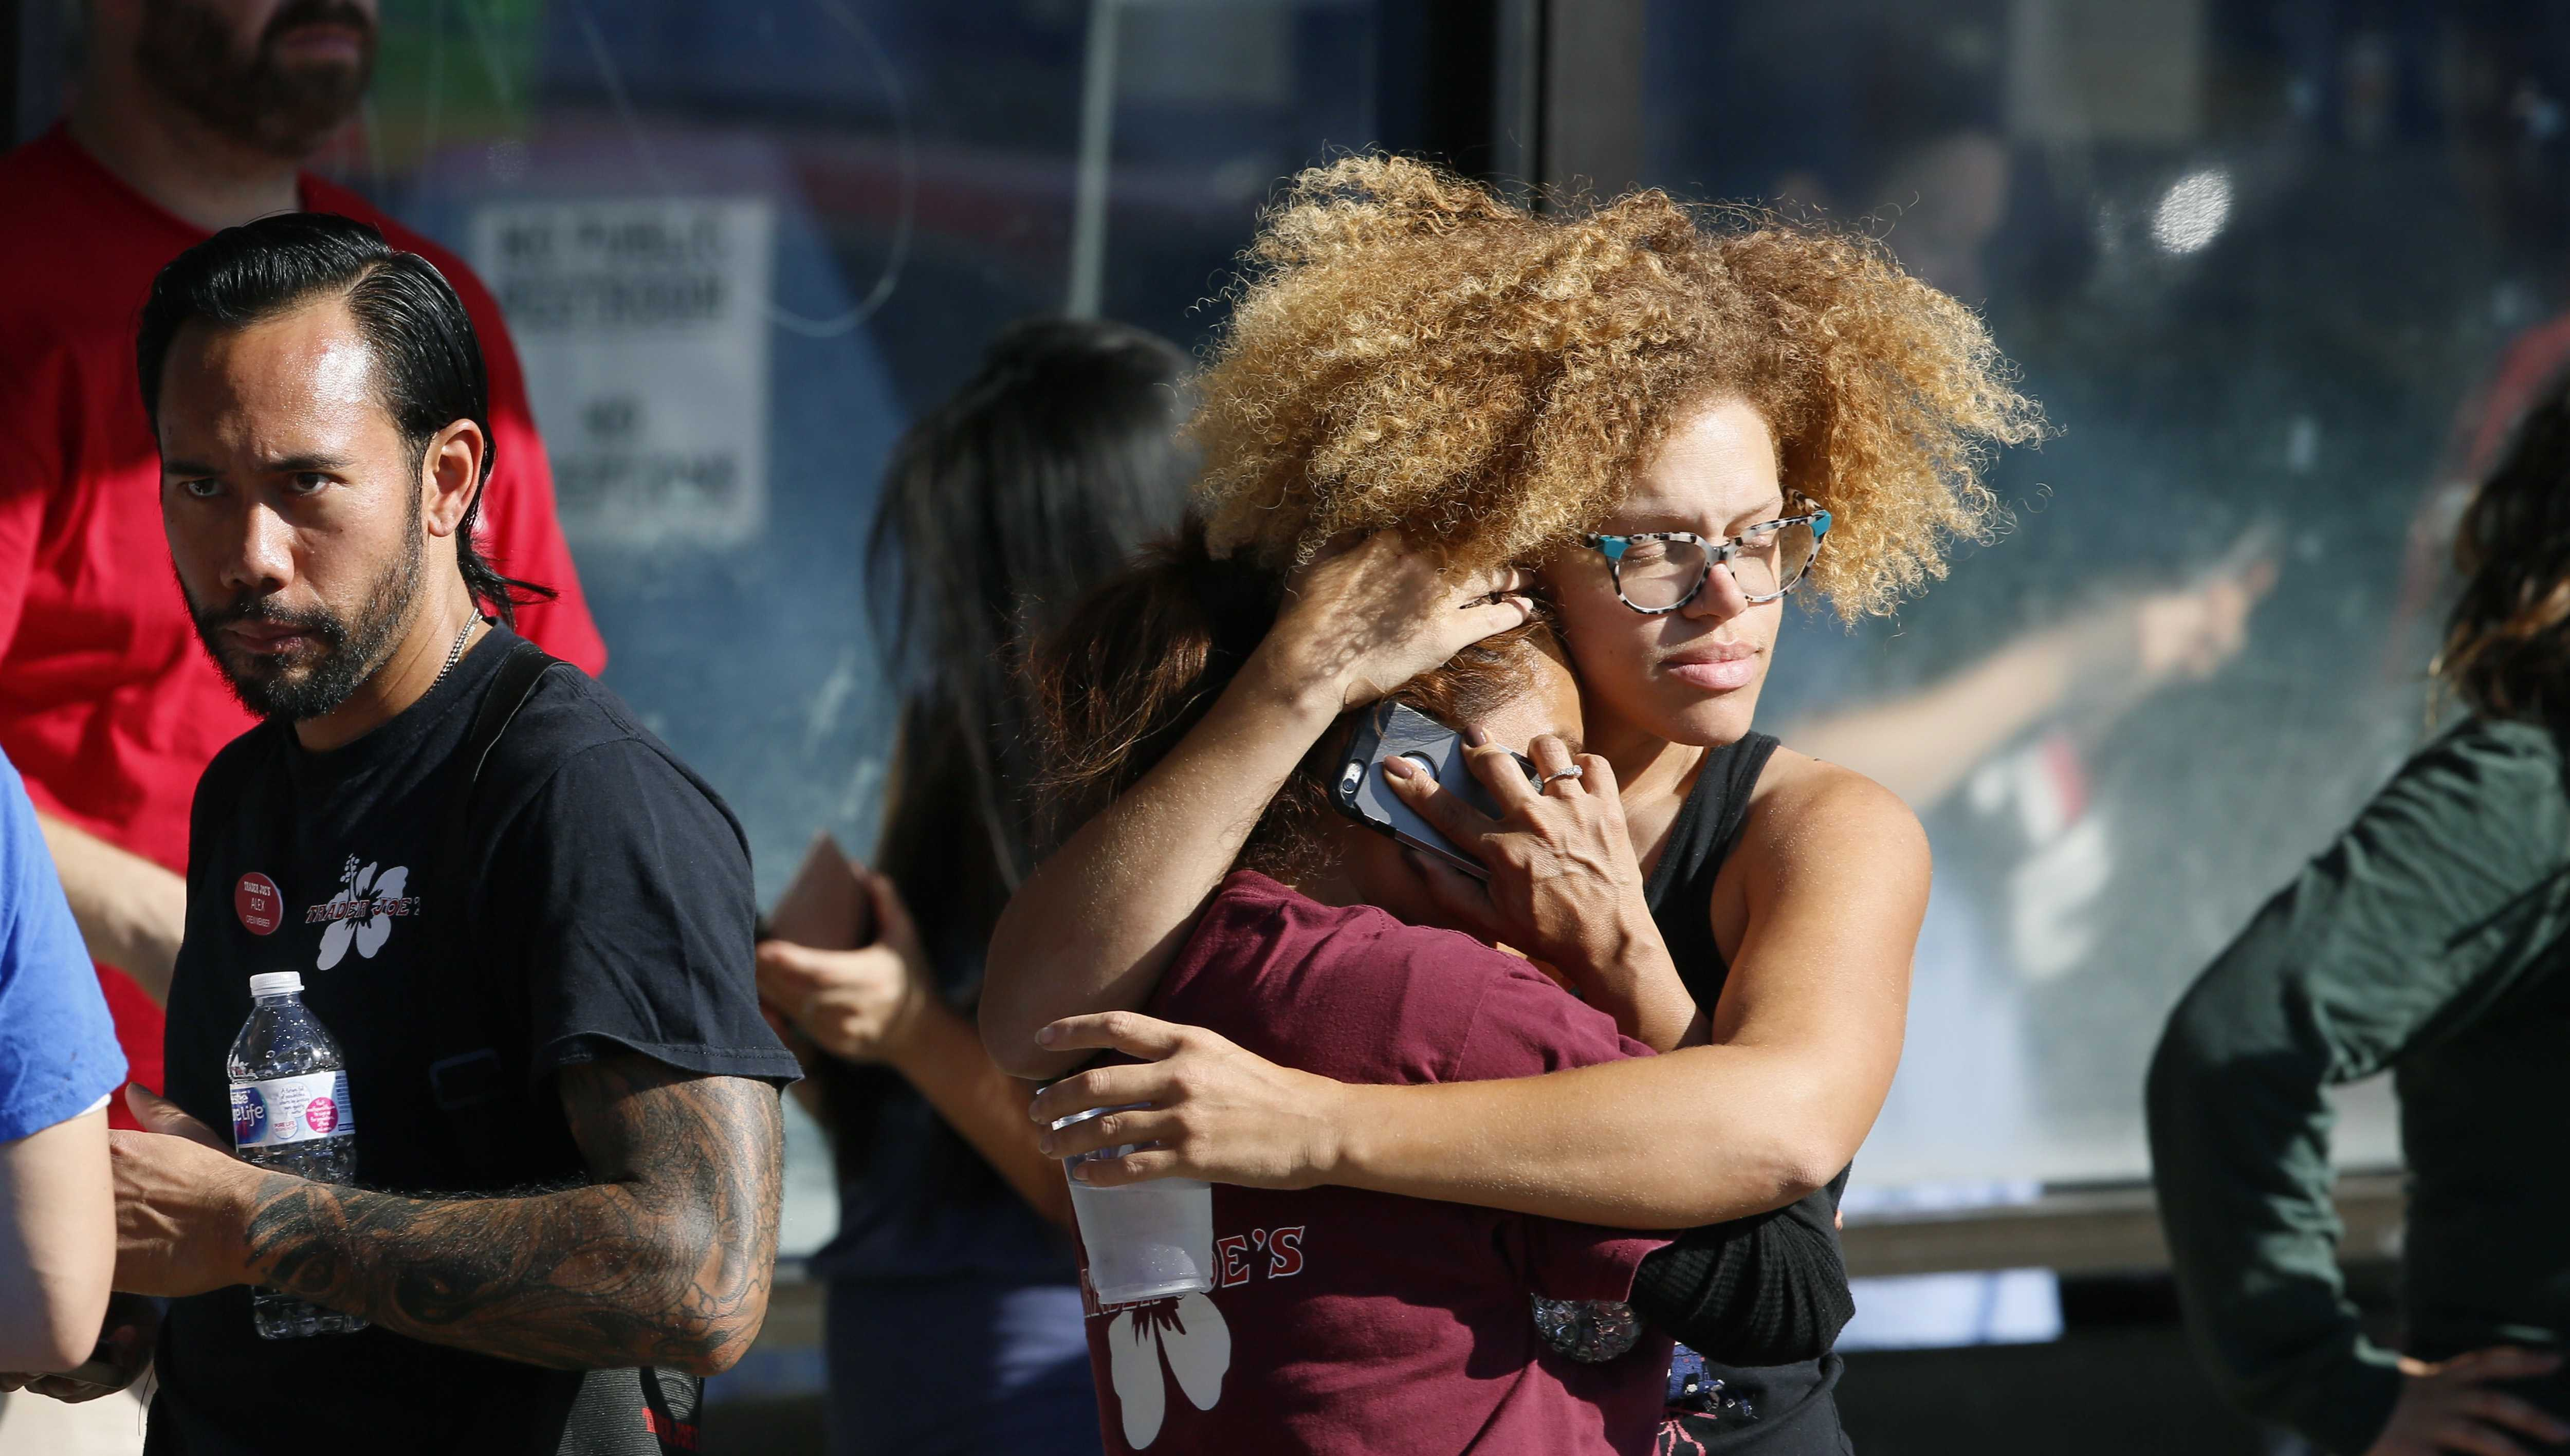 Unidentified Trader Joe's supermarket employees hug after being evacuated by Los Angeles Police after a gunman barricaded himself inside the store in Los Angeles Saturday, July 21, 2018.